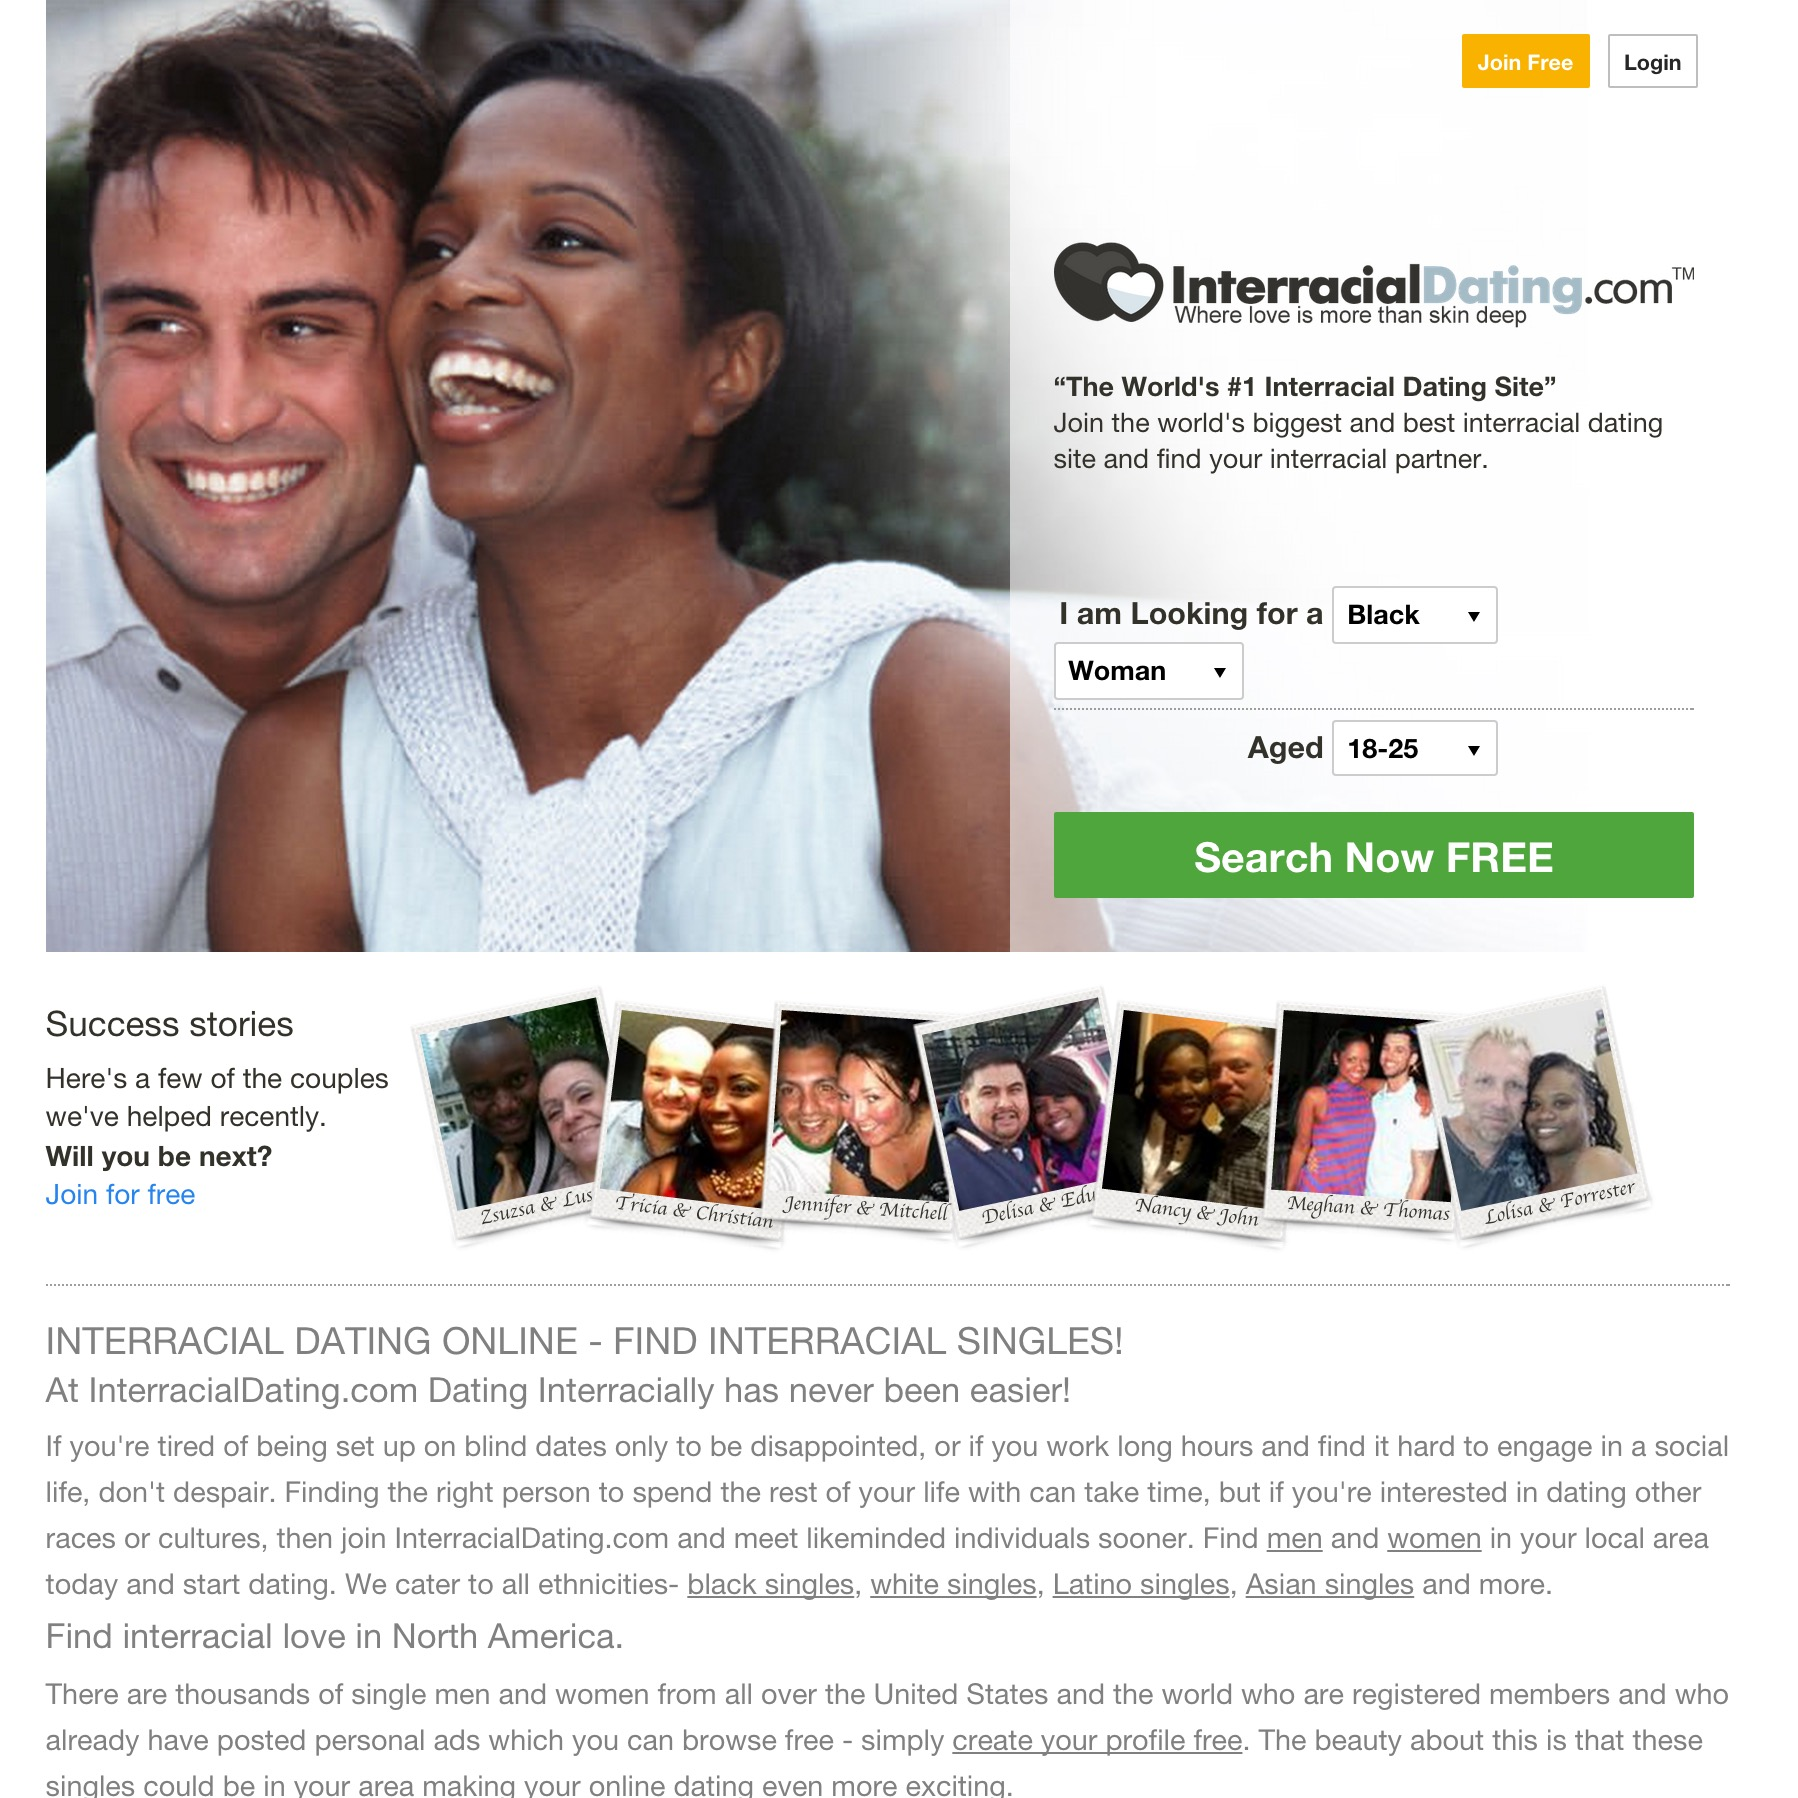 dating website summary Compudate dating matchmaking service business plan company summary compudate offers computer-based matchmaking services.